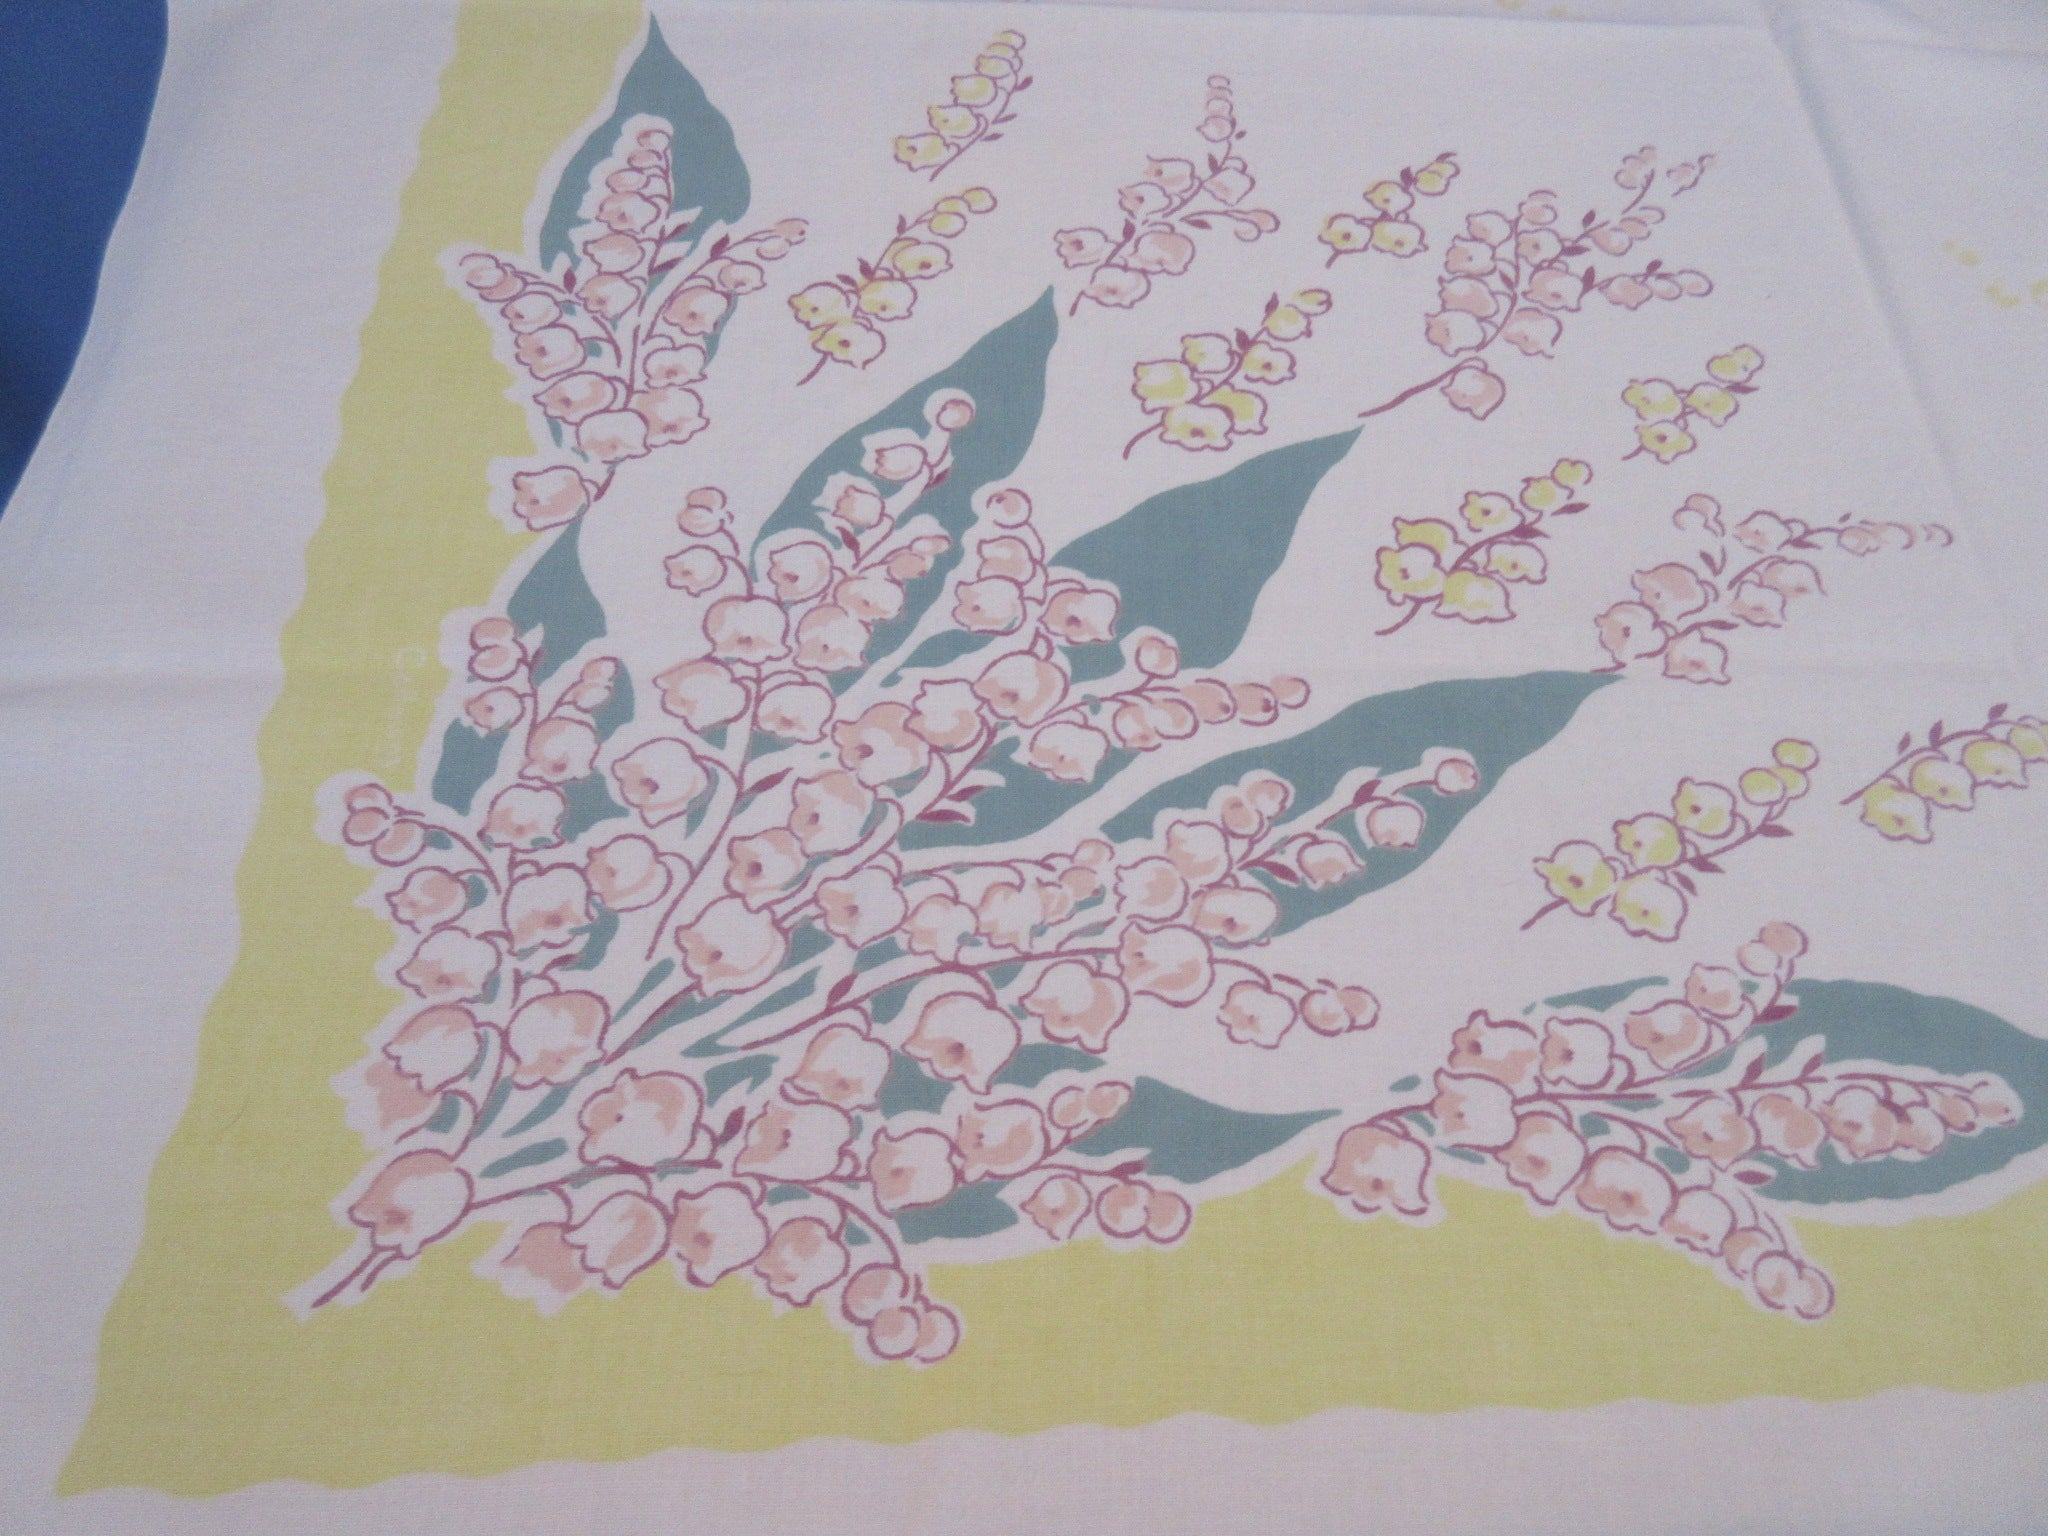 Yellow Nile Green Peach Lily of the Valley Callaway Floral Vintage Printed Tablecloth (51 X 47)